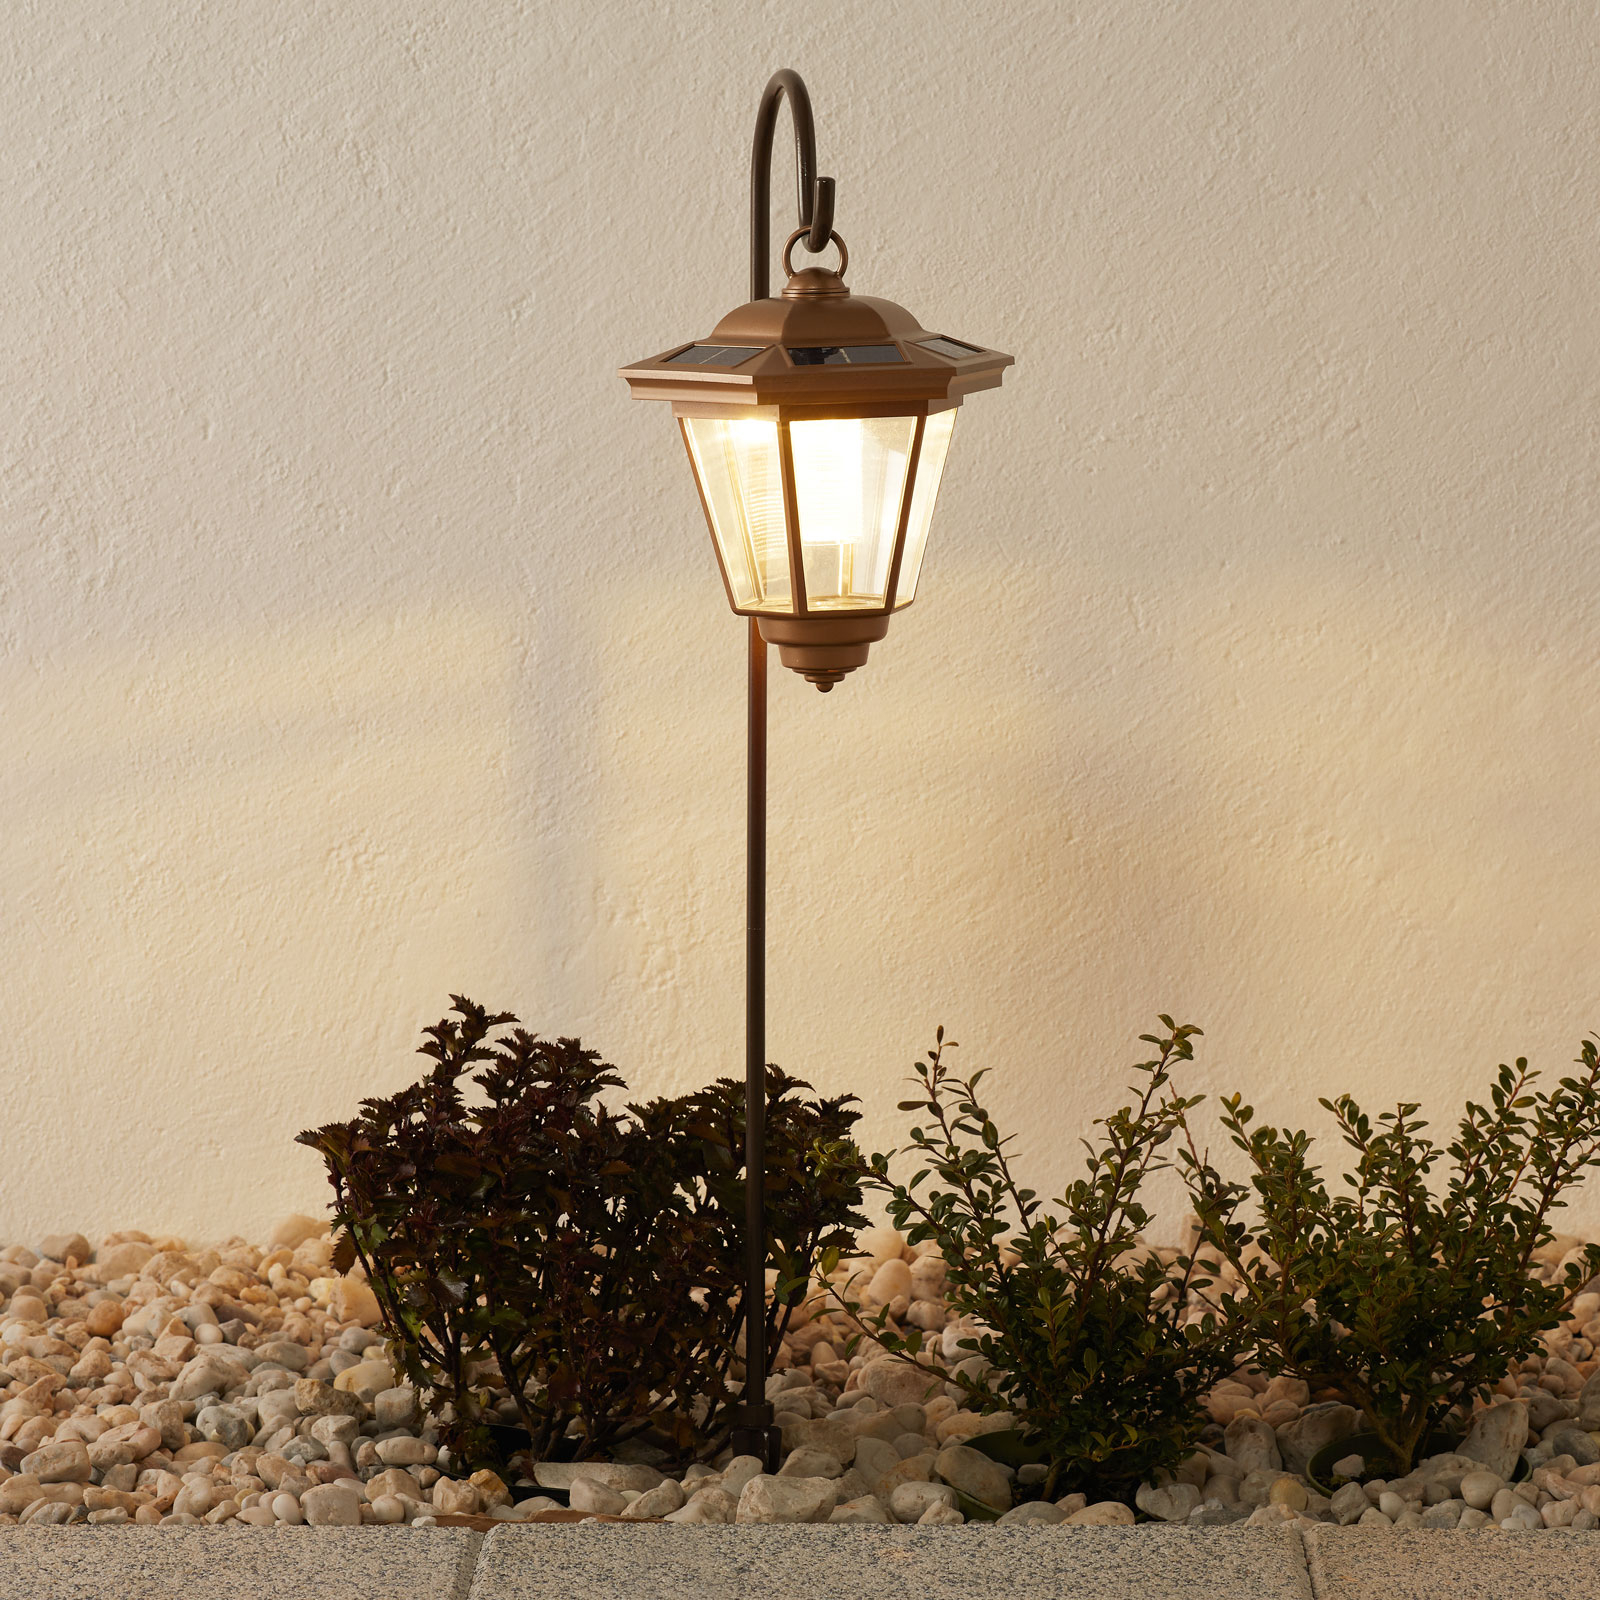 Solar LED pendant light Tivoli_3012135_1